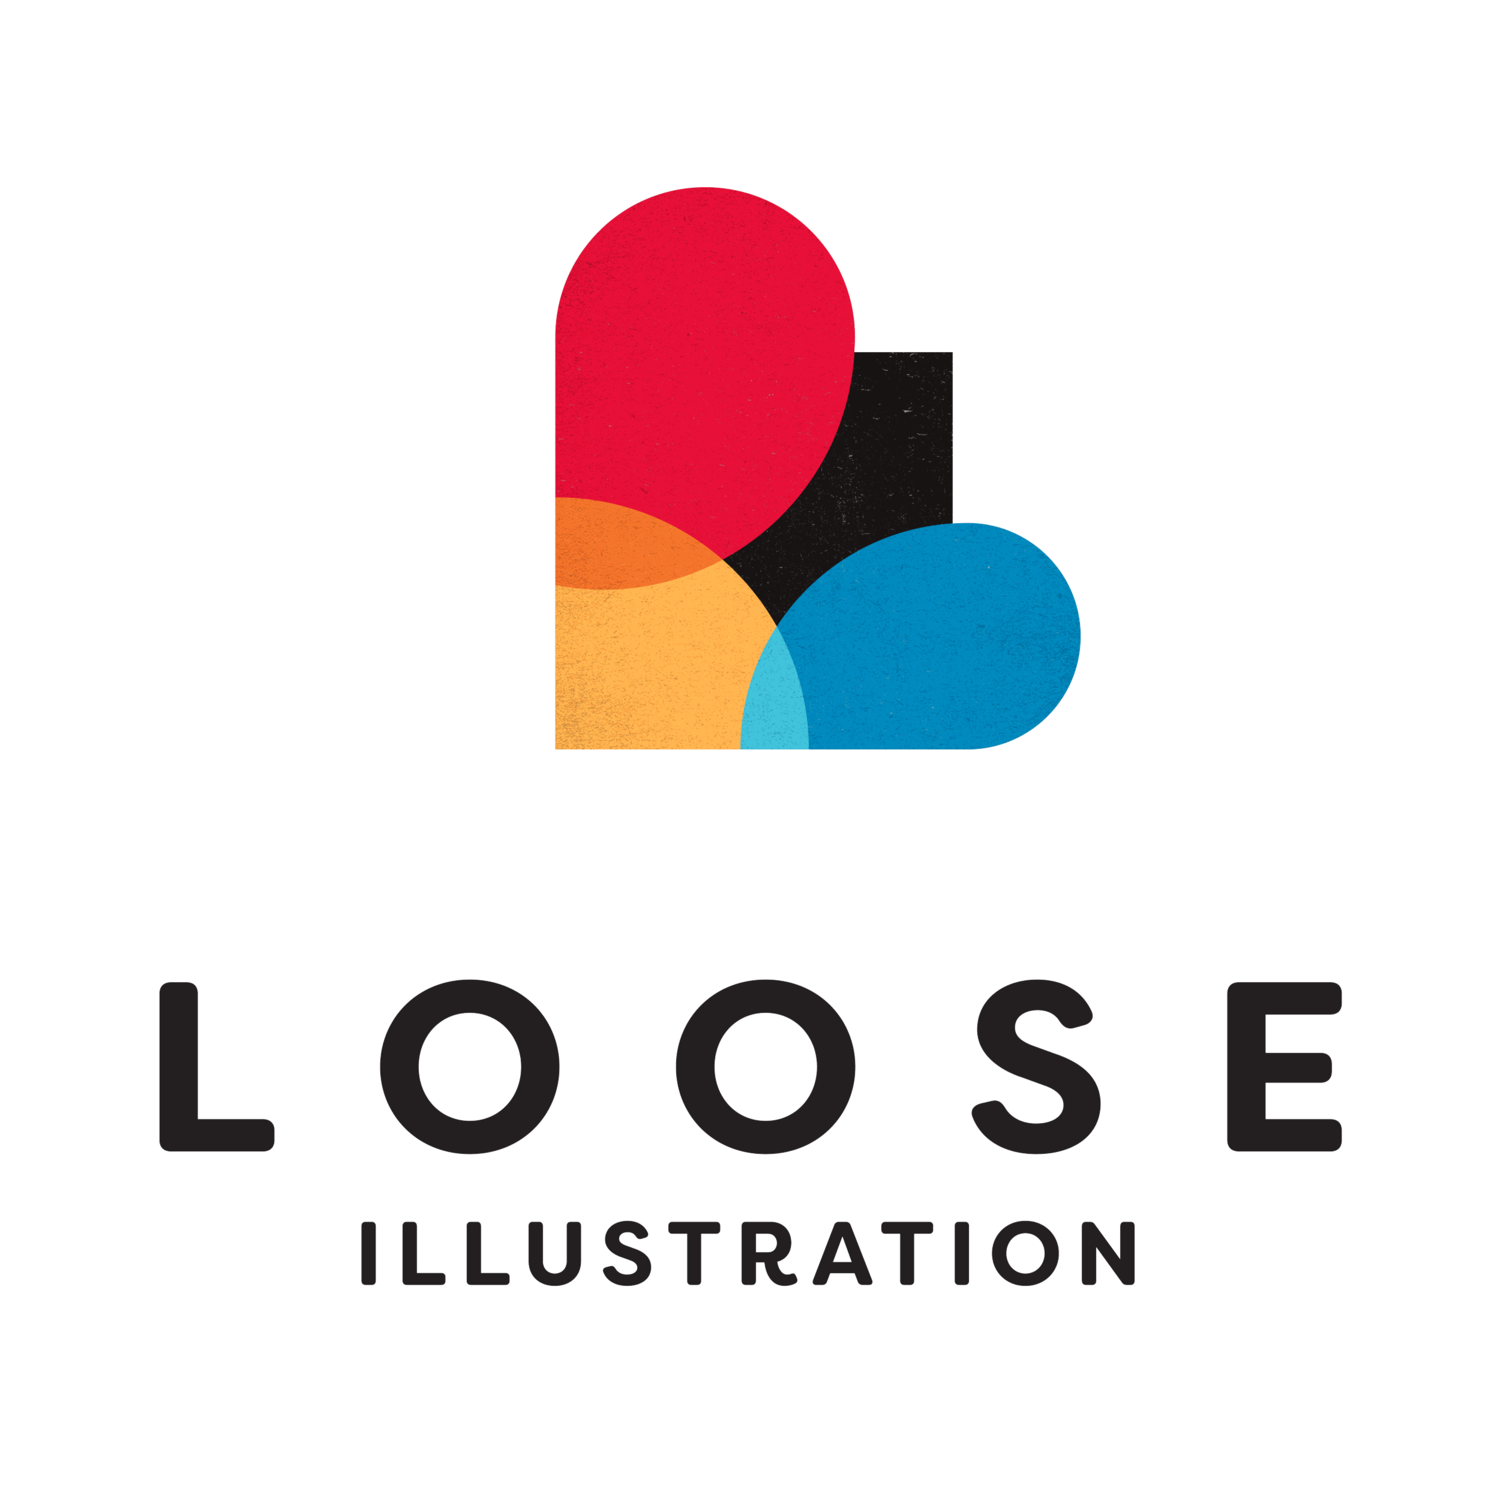 Loose Illustration